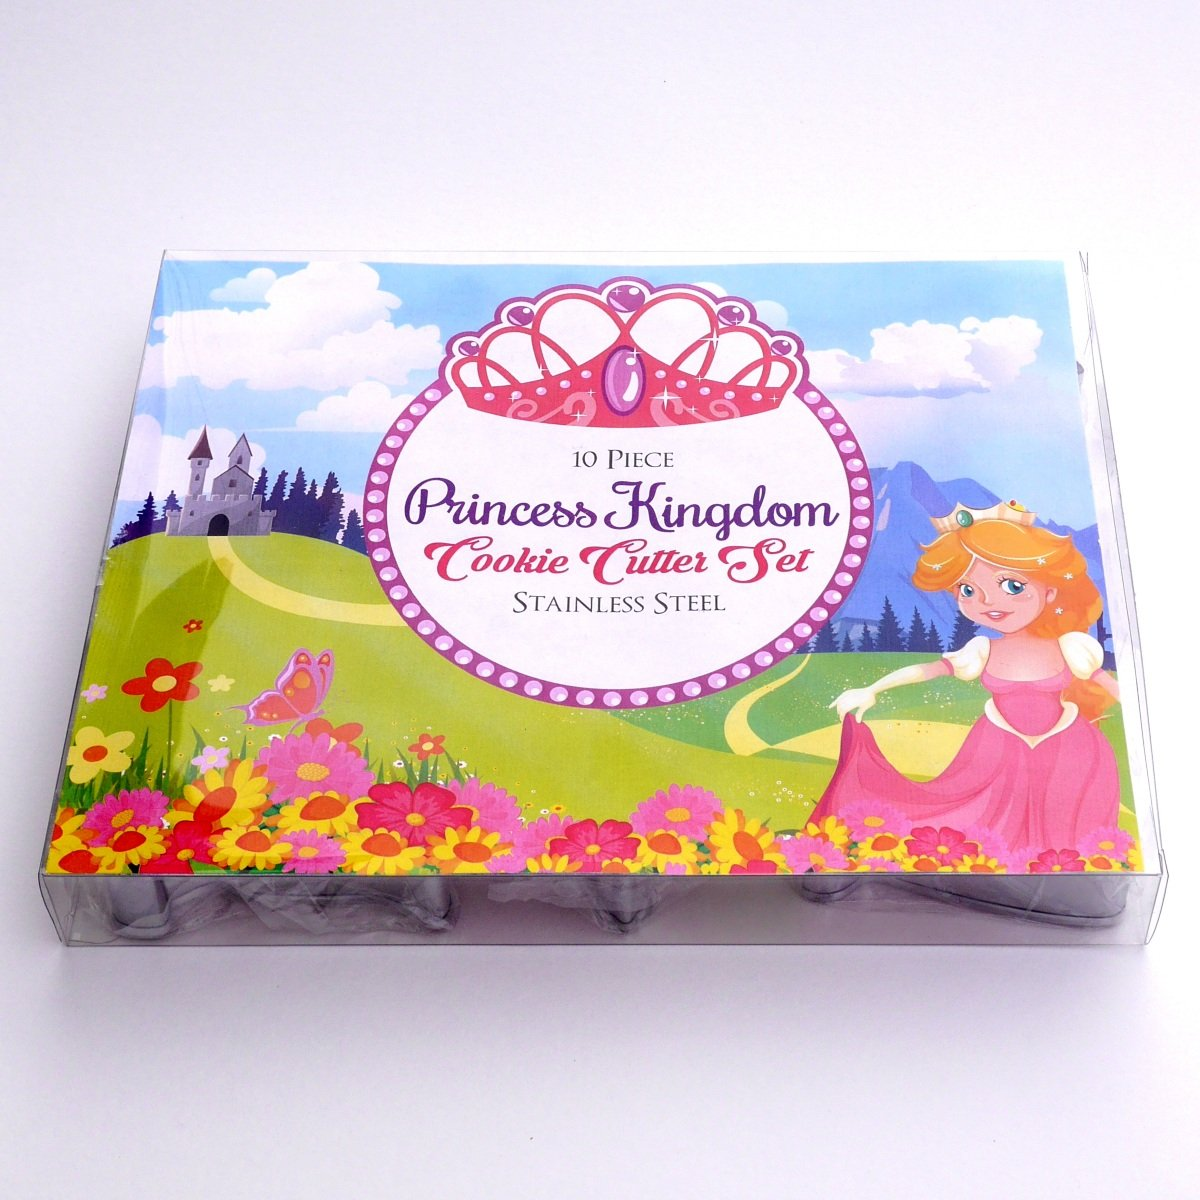 Princess Kingdom Cookie Cutter Set - 10 Piece Stainless Steel by Sweet Cookie Crumbs (Image #1)